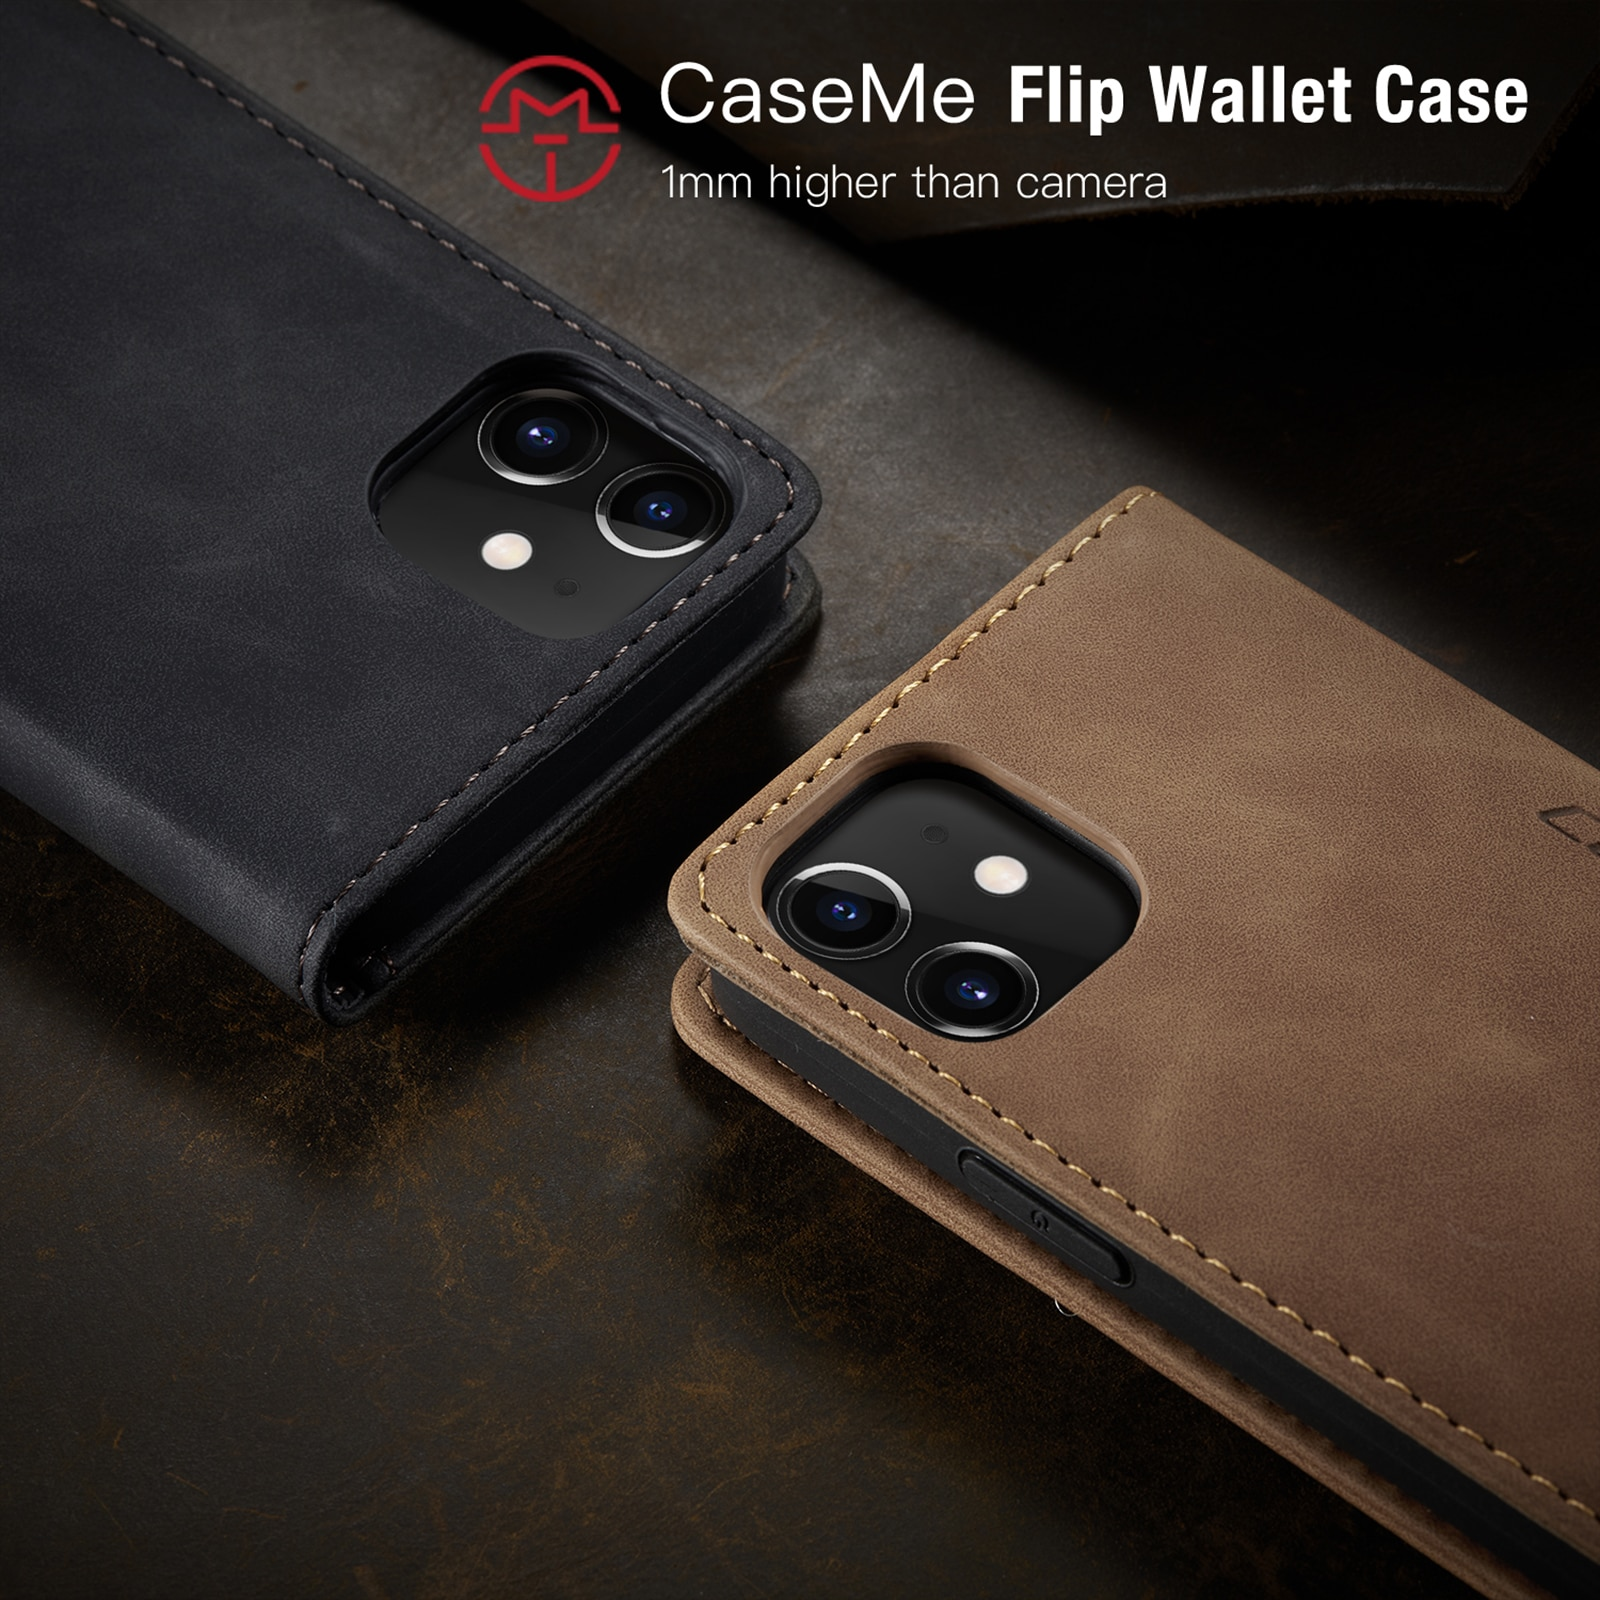 Hcb0ee641ed134b35a1fbf423fe9f8d6ag - Magnetic Leather Flip Case For iPhone 12 / Pro / Pro Max PU Leather Fitted Bumper Soft Retro Flip Case Book Wallet Cover